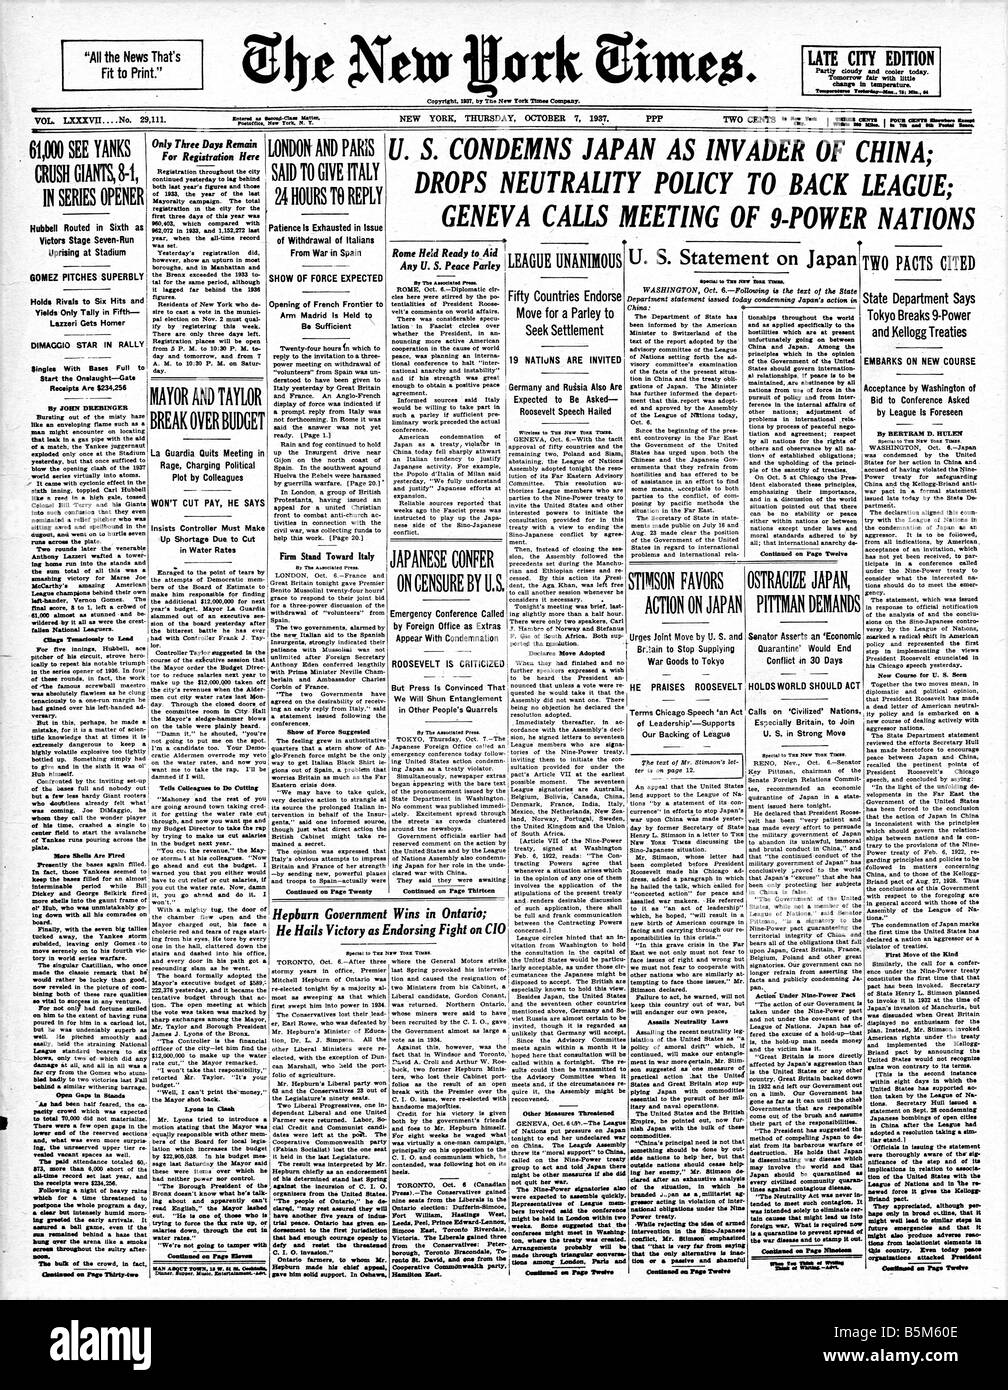 Japan Invades China 1937 headline from the New York Times of October 7th when Japan invaded China - Stock Image